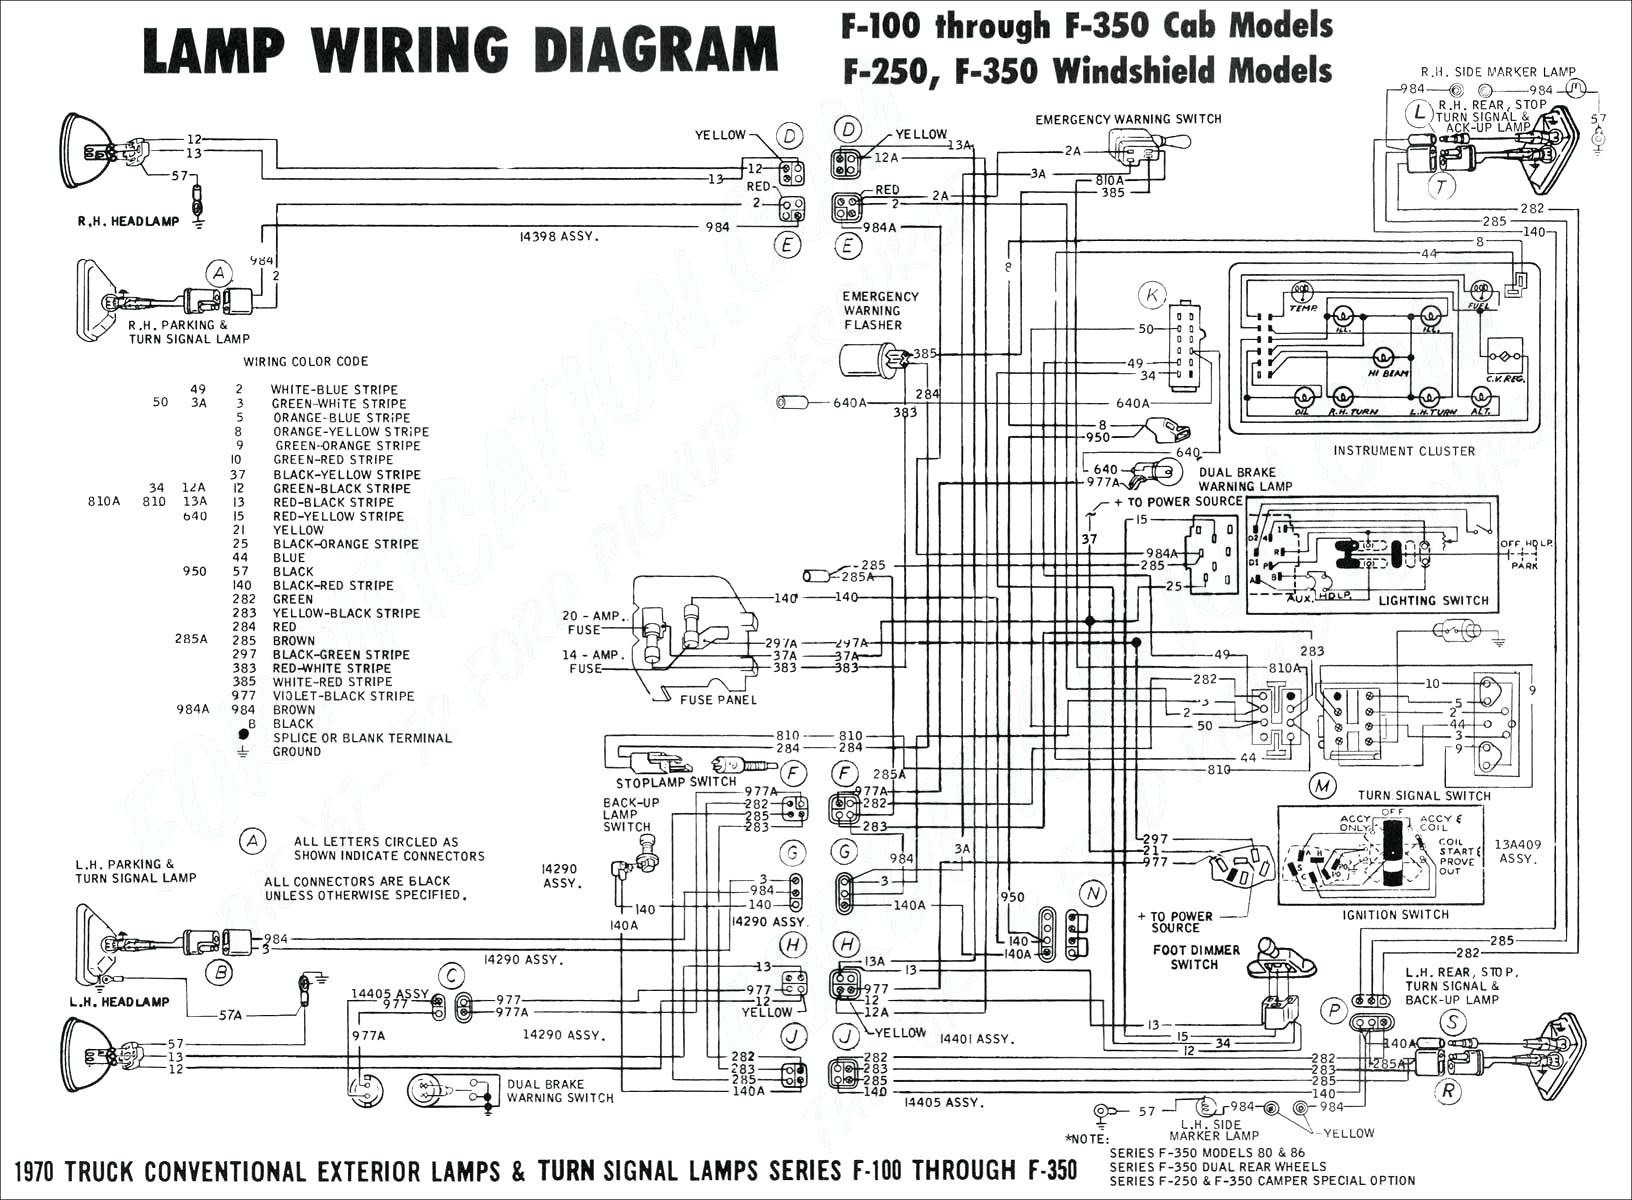 Wiring Diagram for A Chinese 110 atv Pool Light Wiring Diagram Of Wiring Diagram for A Chinese 110 atv